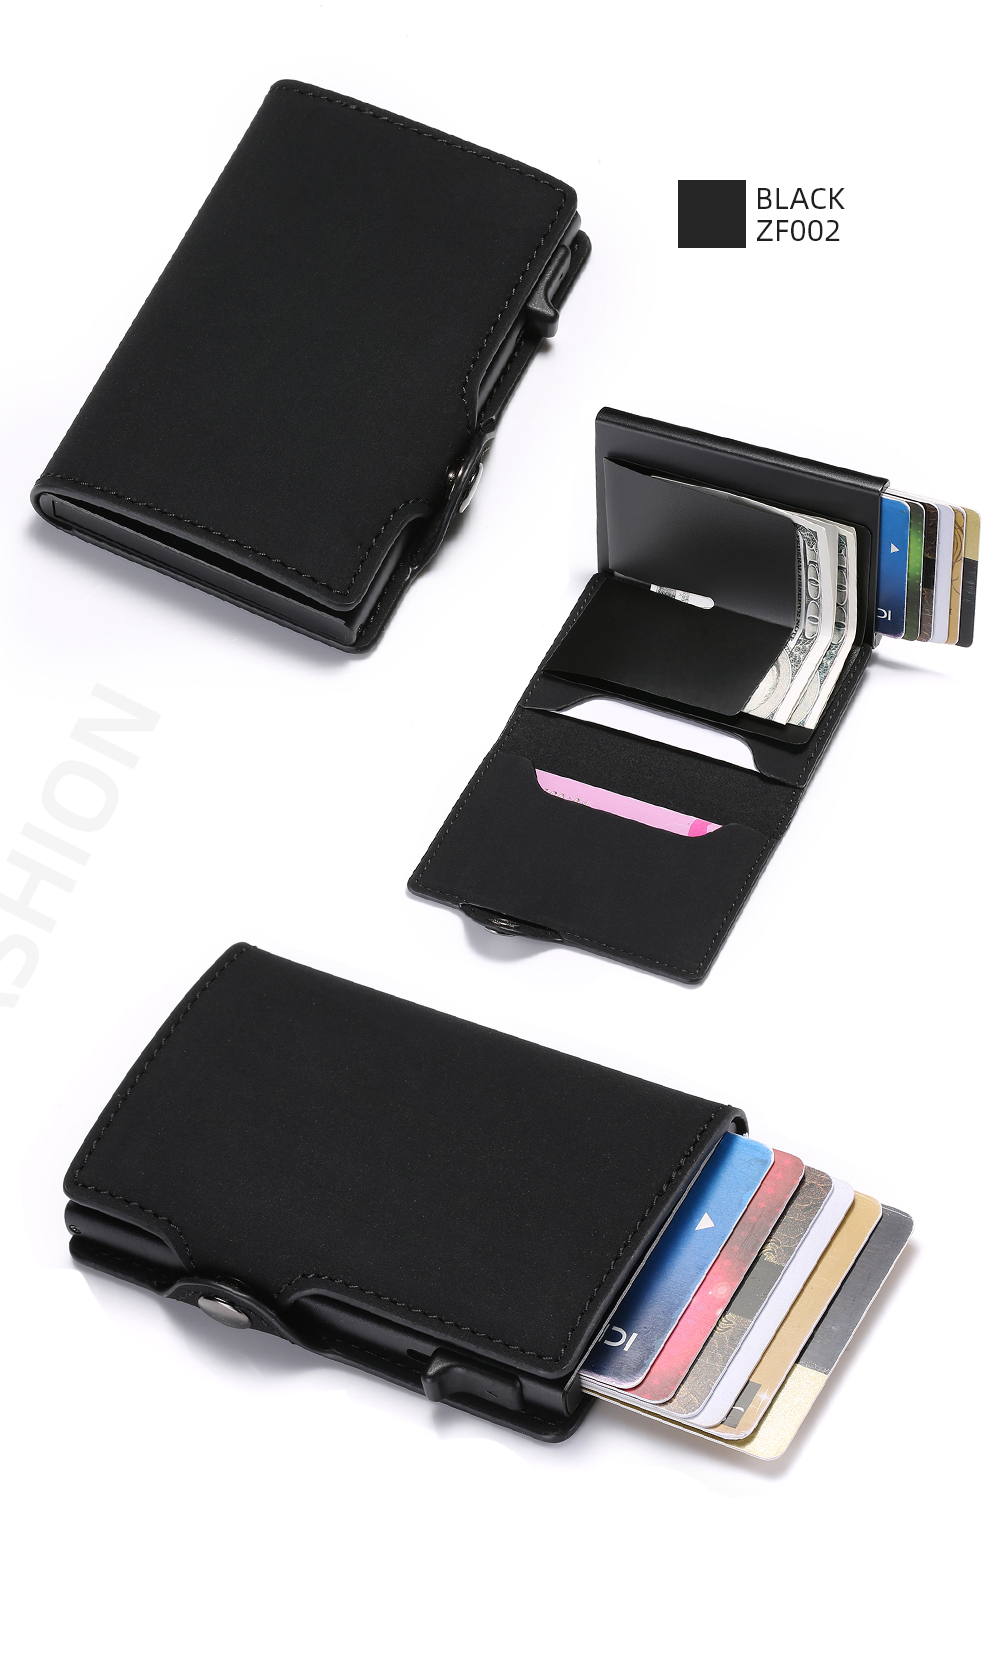 Hcd238ce7f2d4489cb1acd4e79bb29666R - BISI GORO Single Box Card Holder PU Leather Card Wallet New Men RFID Blocking Aluminum Smart Multifunction Slim Wallet Card Case